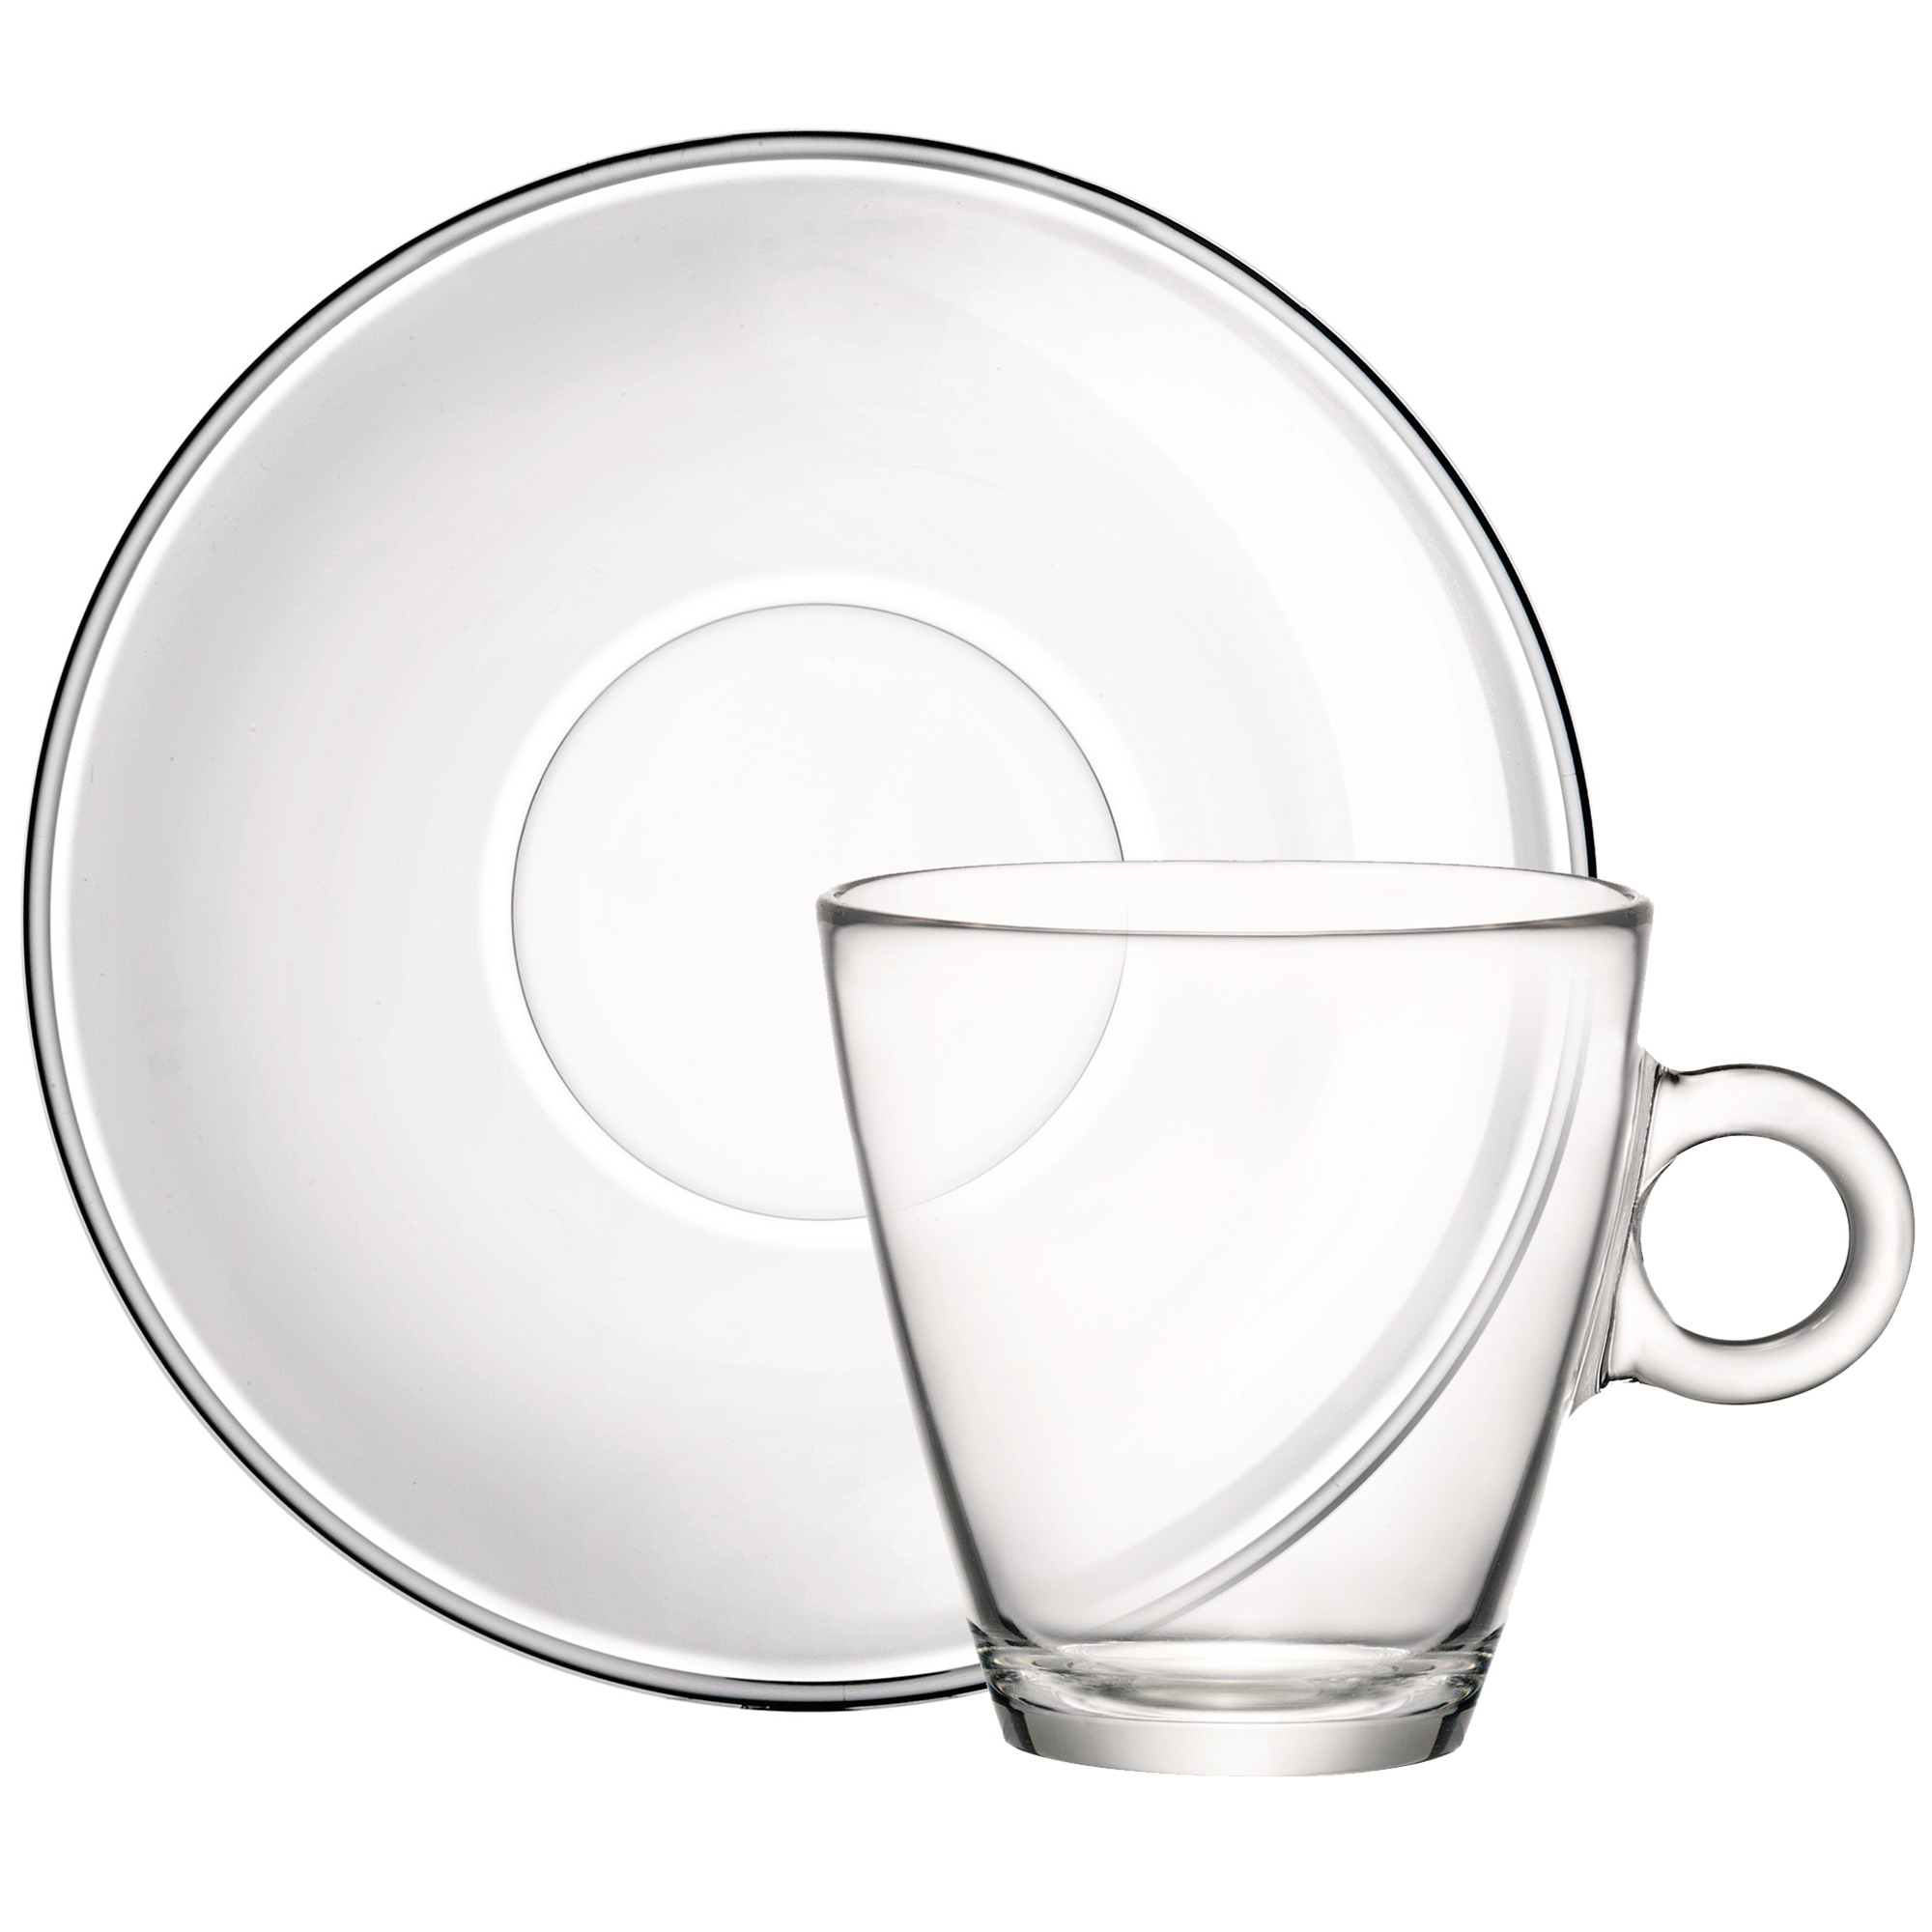 Easy Bar Glass Tea Cup And Saucer 320ml At Drinkstuff